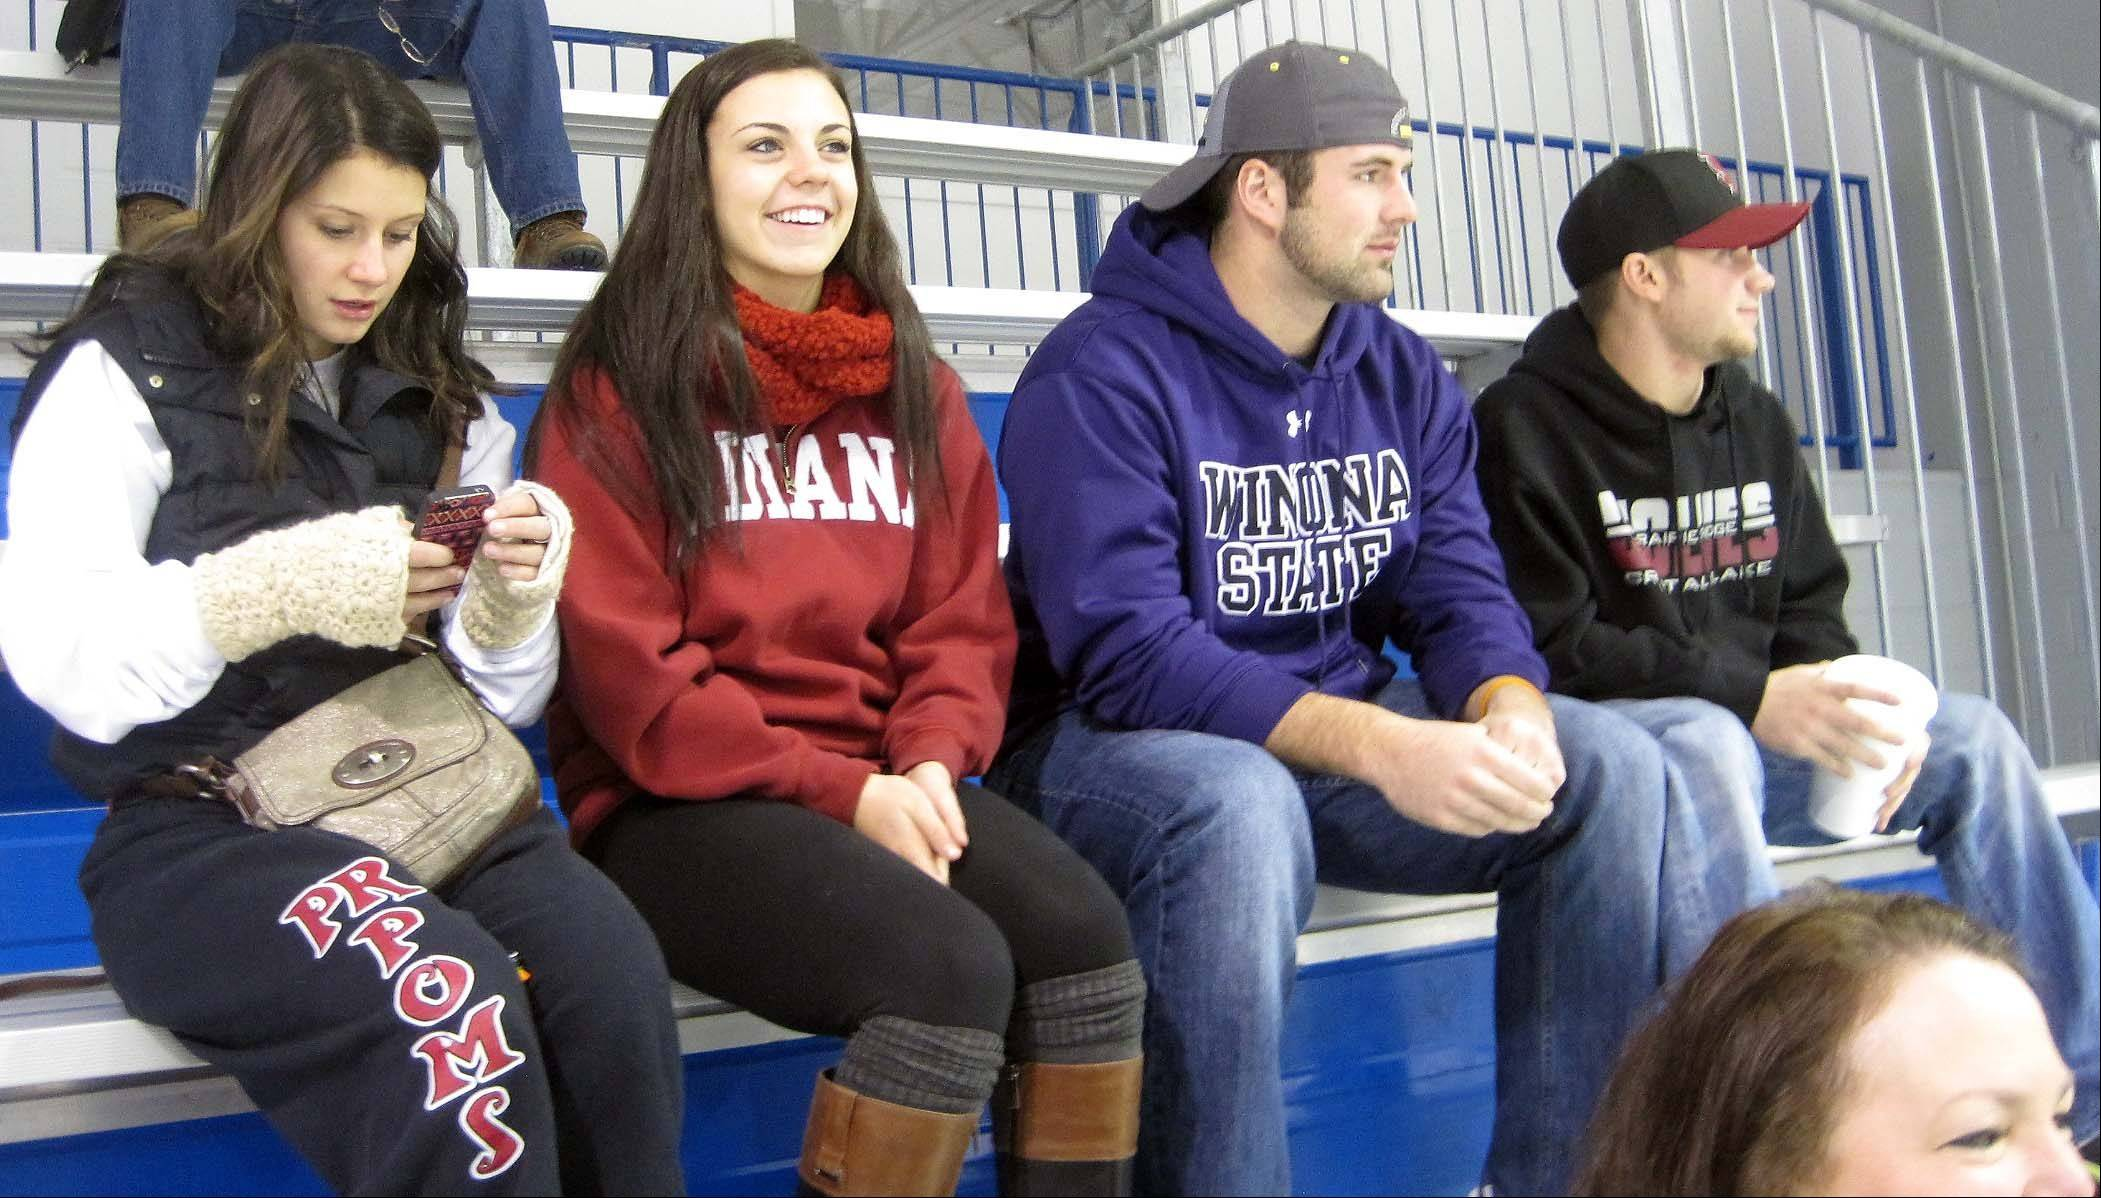 "About 40 people attended a ""Miracles for Moose"" benefit hockey game on Saturday at Leafs Ice Centre in West Dundee to raise funds for the family 18-year-old Anthony ""Moose"" Mustari, of Crystal Lake, who is battling a rare form of leukemia. Pictured are Anthony's friends, from left, Rachel Van Doorn, 18, of Crystal Lake, Elaine Cotter, 19, of Crystal Lake, Nick Margiotta, 19, of Crystal Lake, and Tyler Kwiatkowski, 18, of Cary."